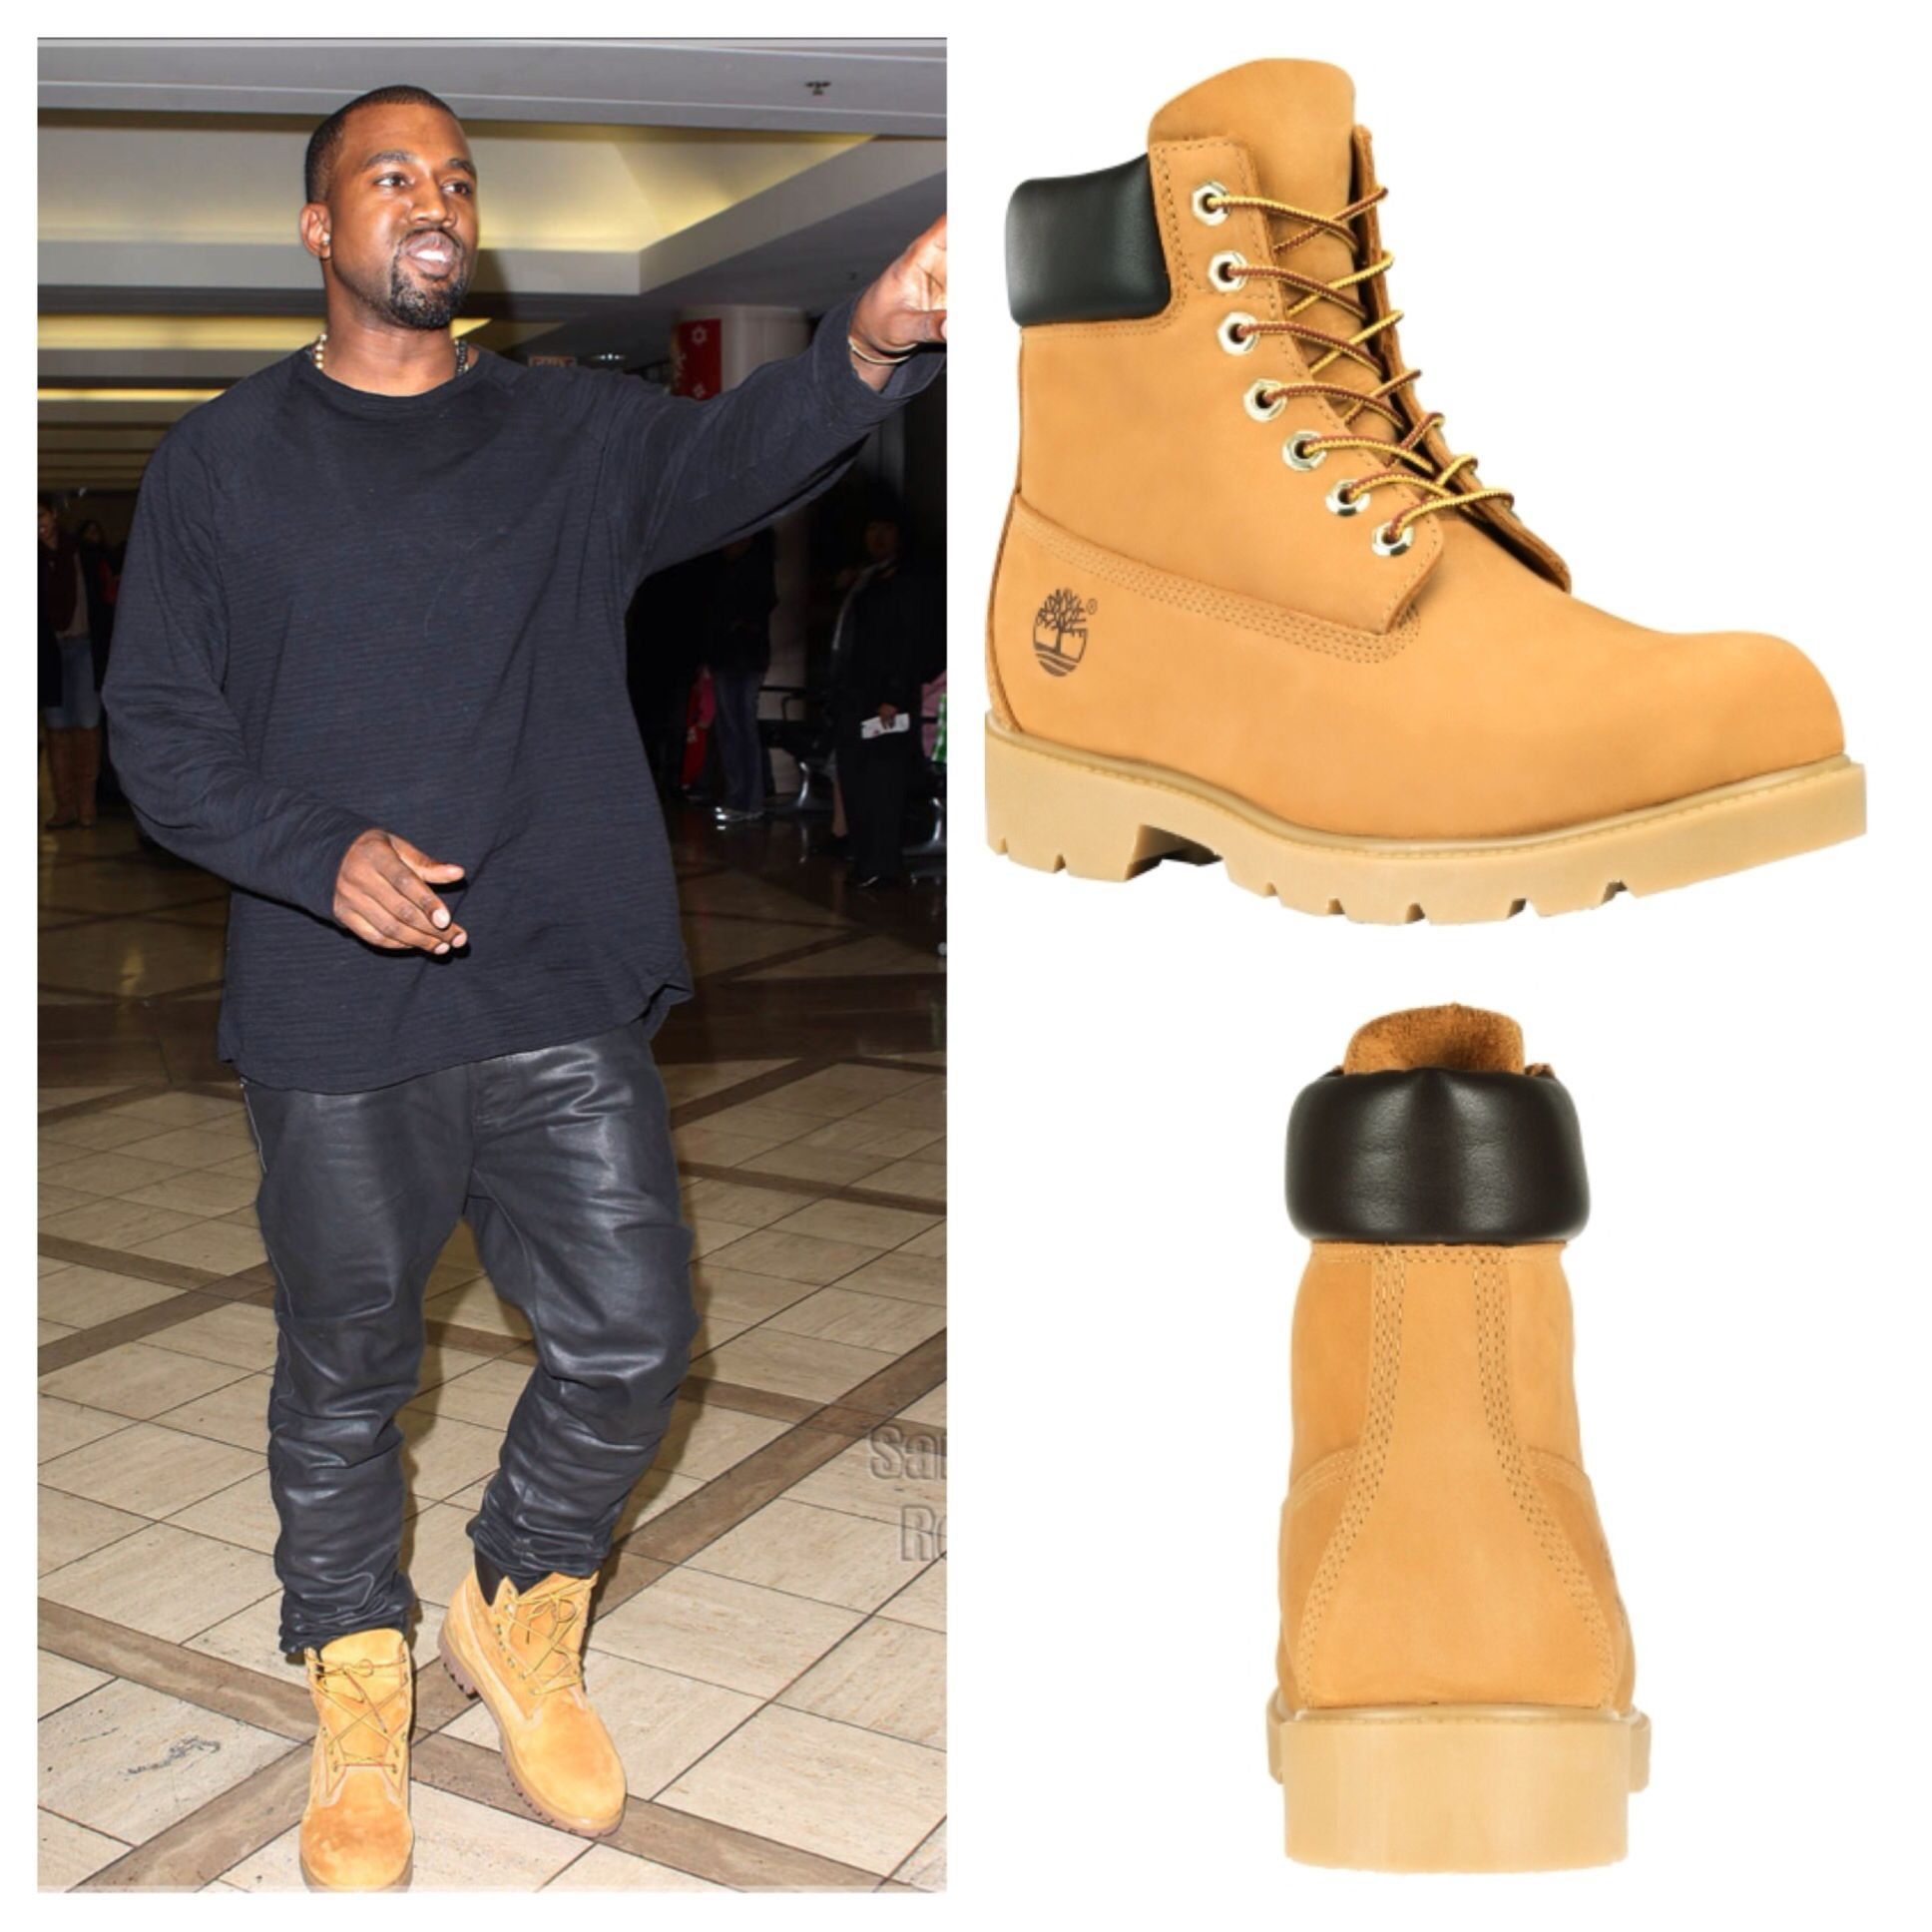 táctica frontera Regresa  Pin by Christian's Book on Shoes | Timberland outfits, Timberland boots,  Kanye west